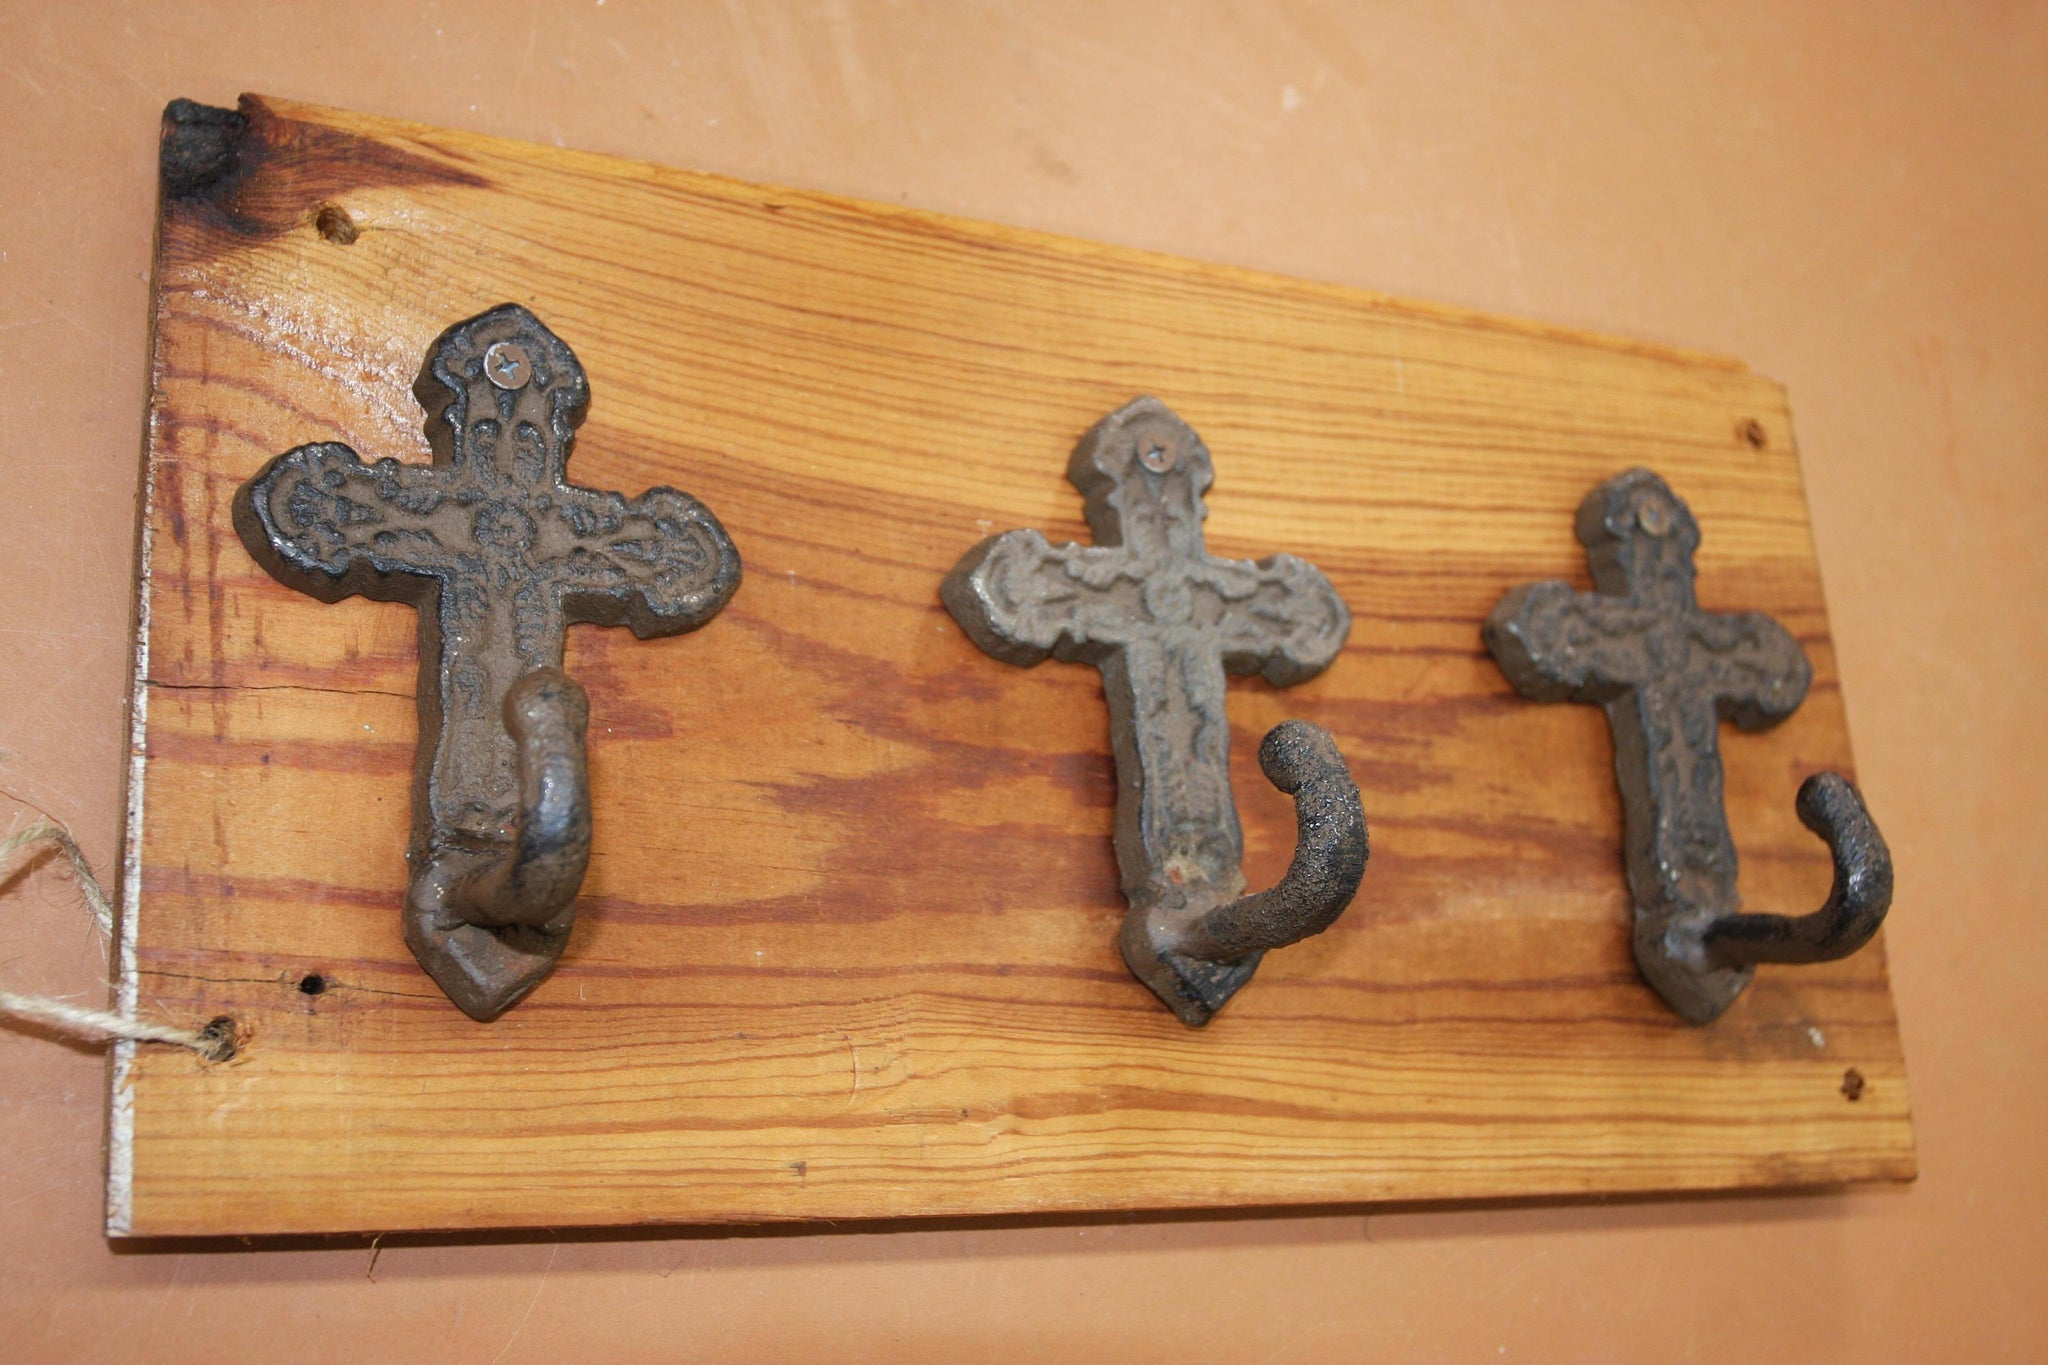 Old World Mission Cross Bath Decor Bath Towel Hooks, Handmade in USA, Cast Iron, 100 Year Old Wood, The Country Hookers, CH-9